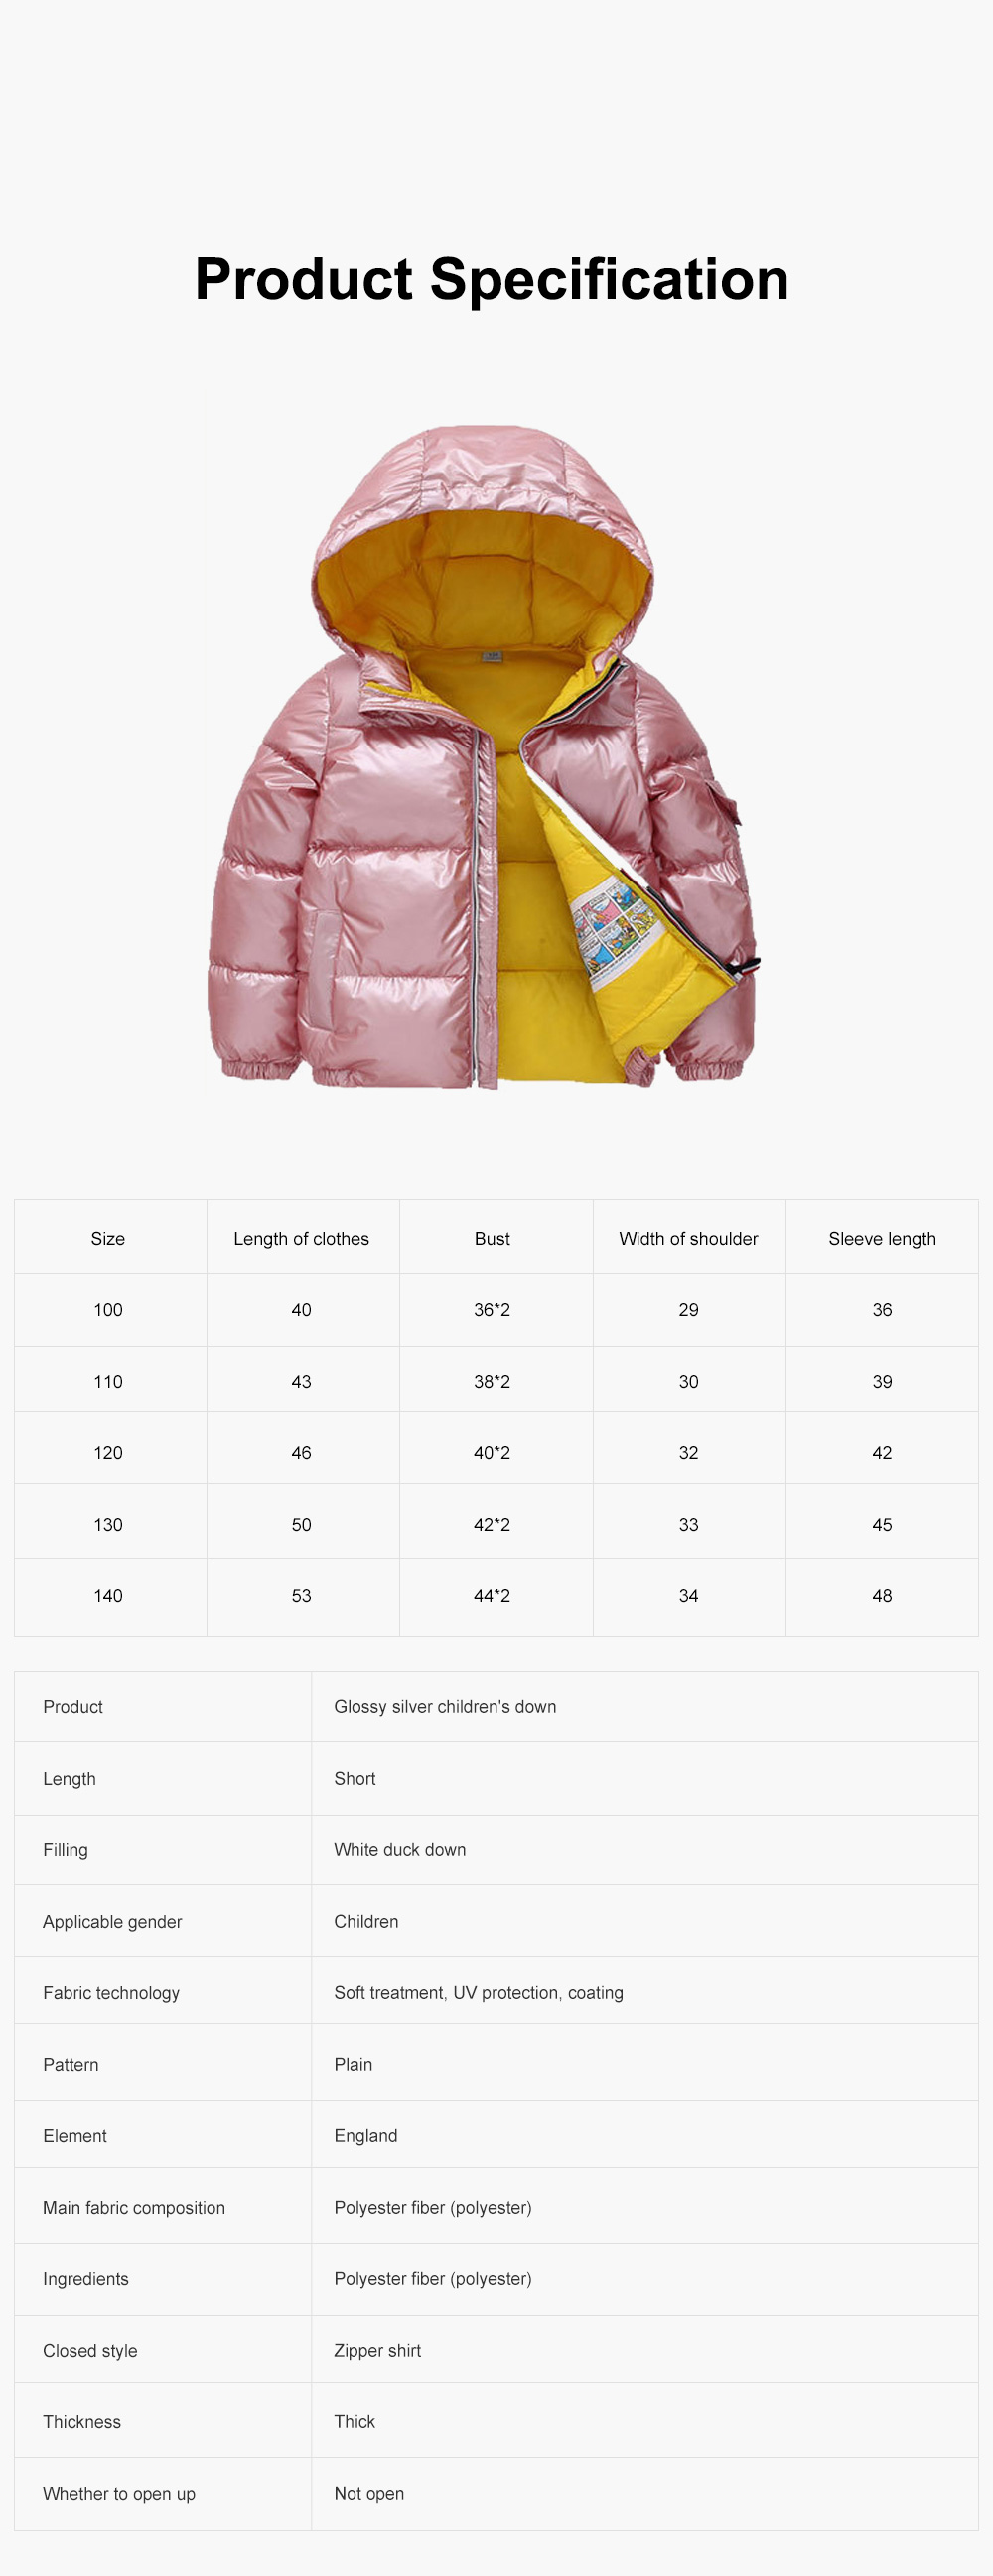 Glossy Silver Children's Down Coat Thickened Cotton Men & Women Children's Clothing Baby Down Cotton Space Bread Clothing 2019 6